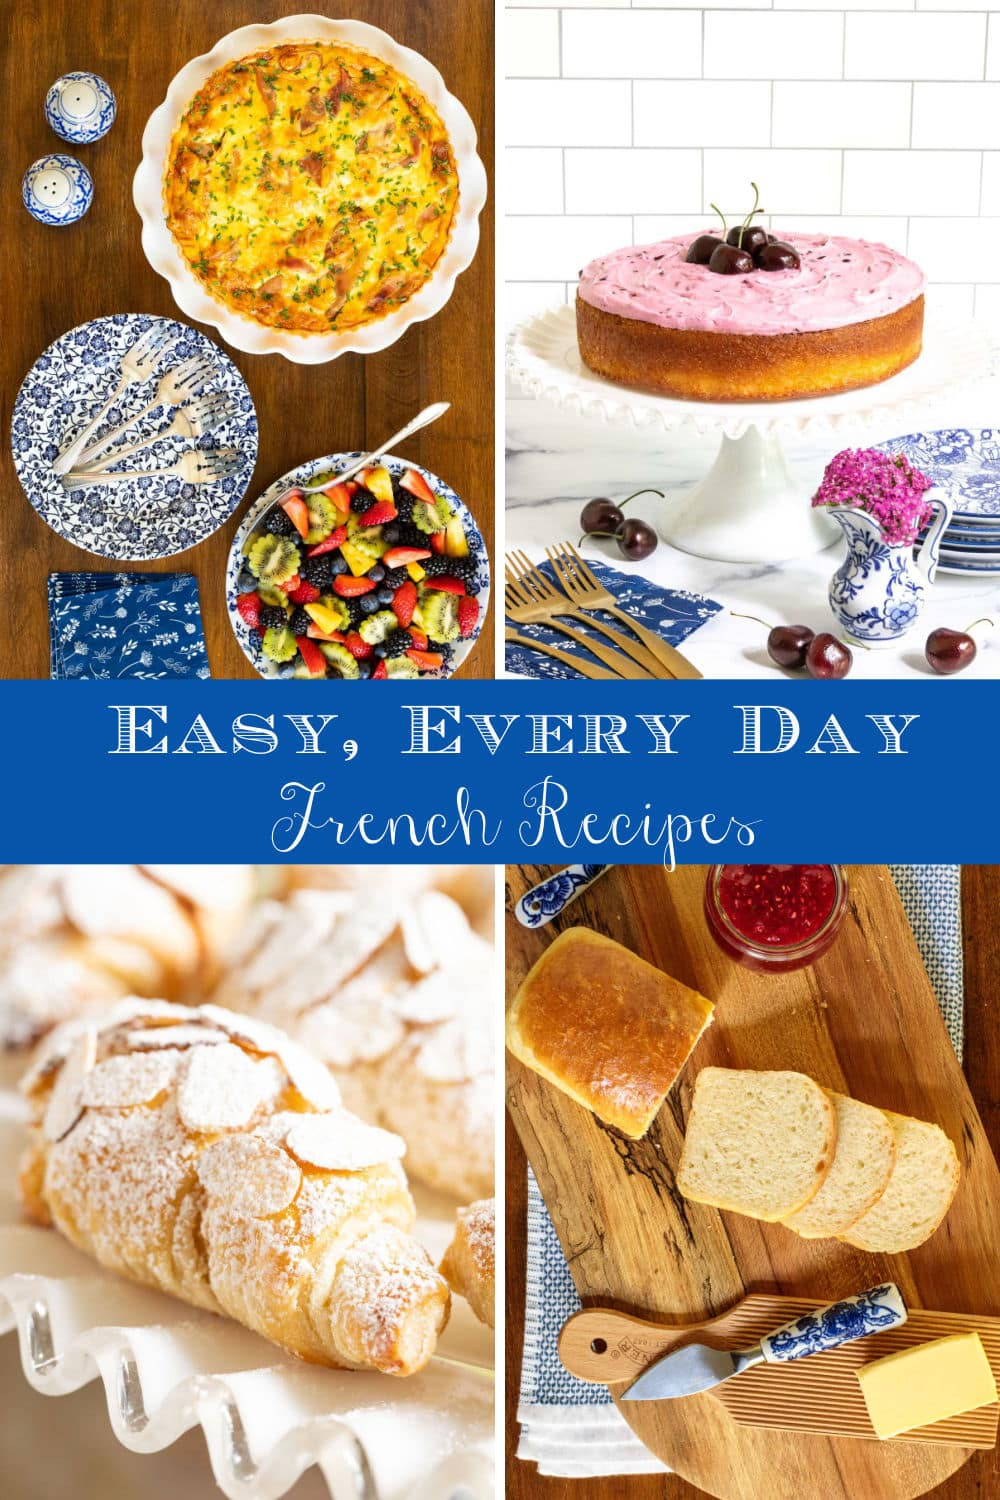 Every Day Easy French-Inspired Recipes